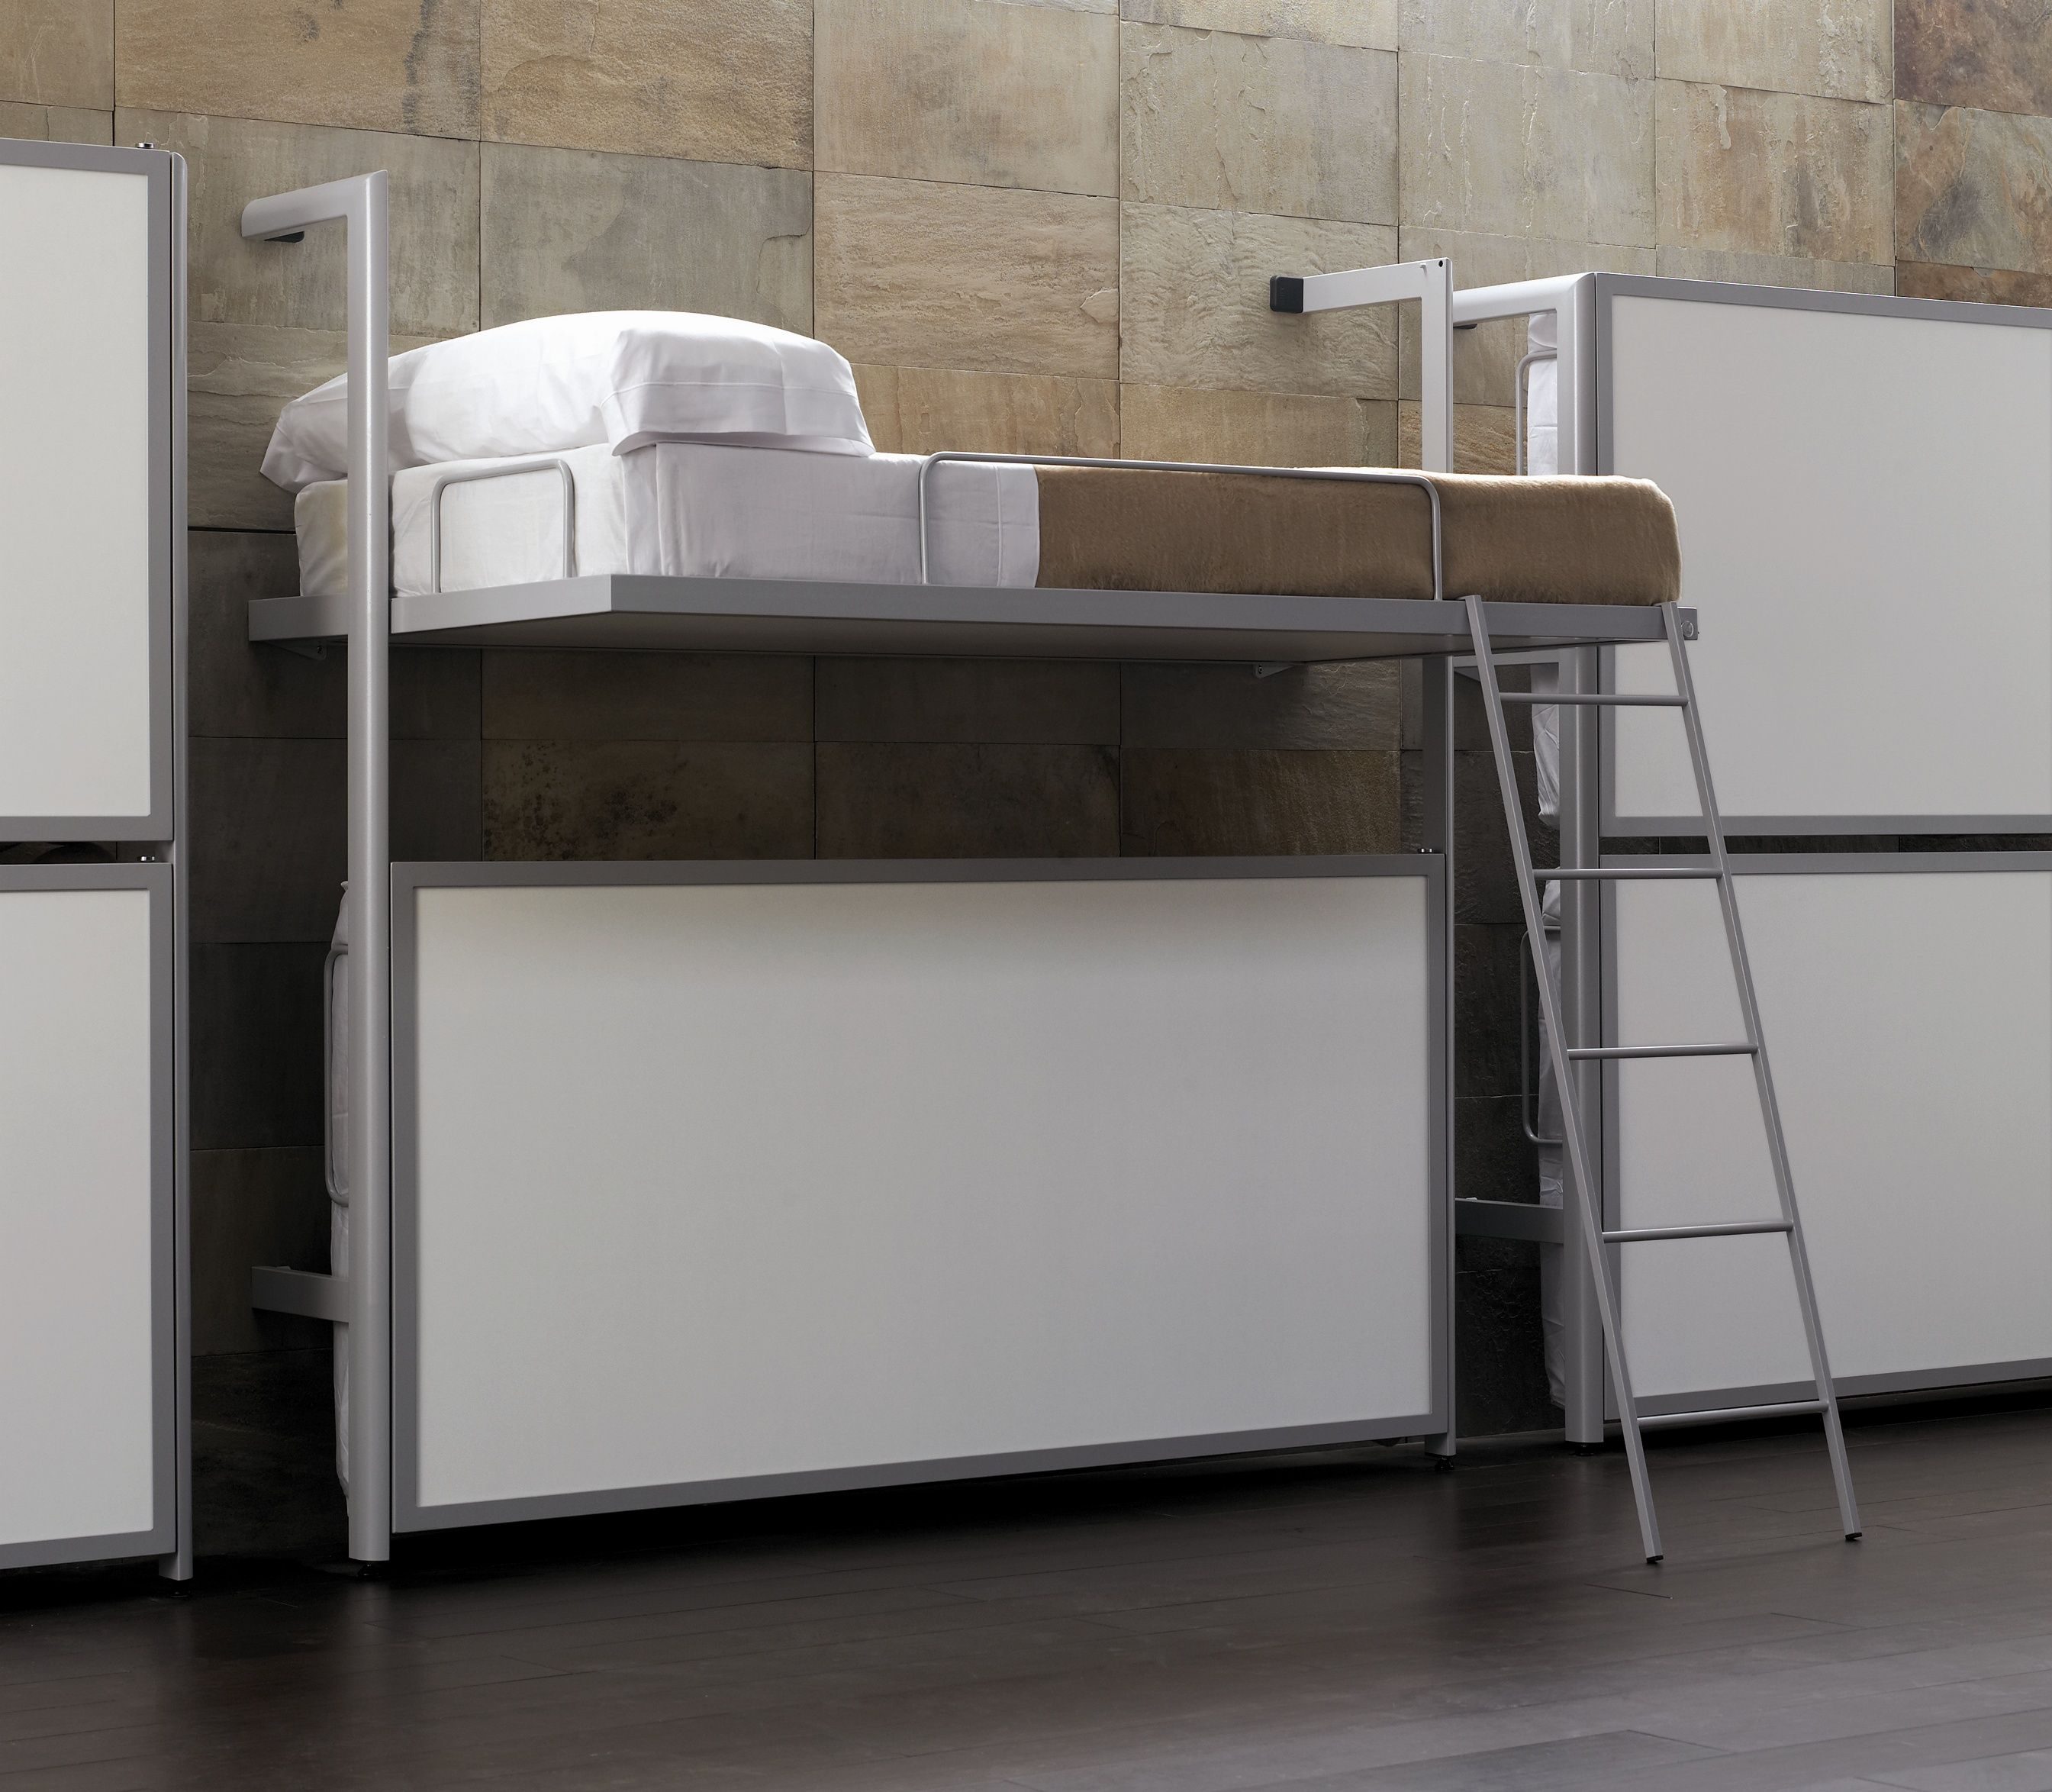 Loft bed with slide out desk  Akume akume on Pinterest